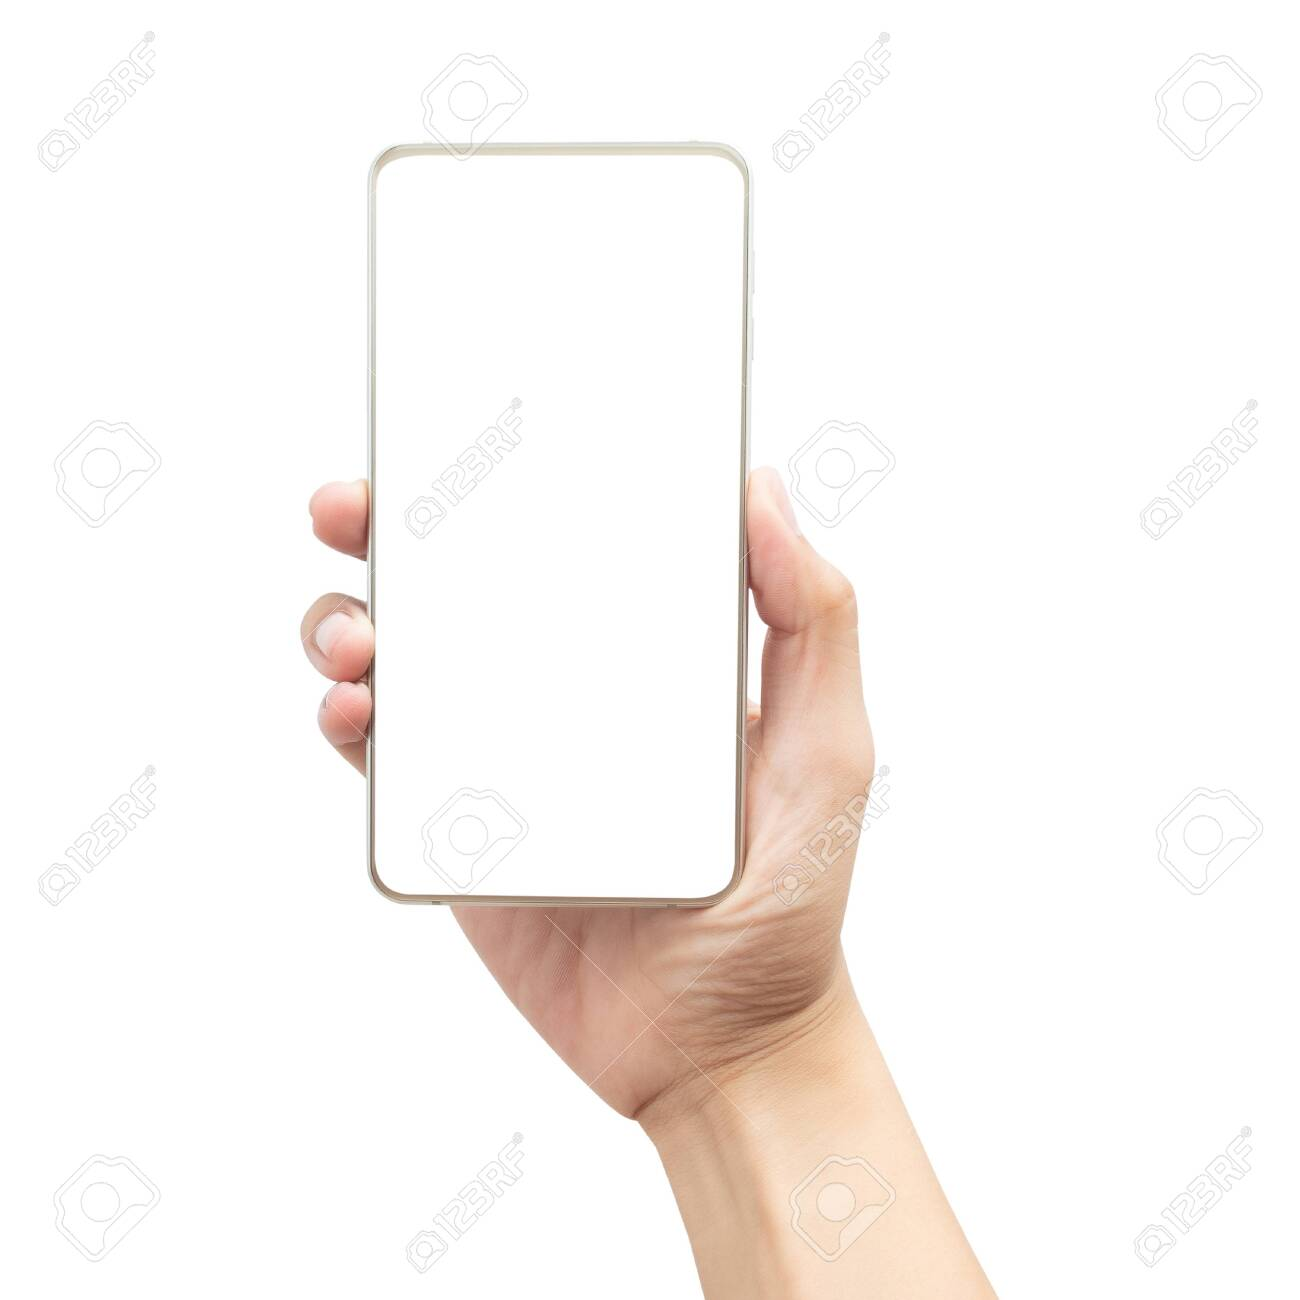 Male hand holding the gold smartphone with blank screen isolated on white background with clipping path - 145693855